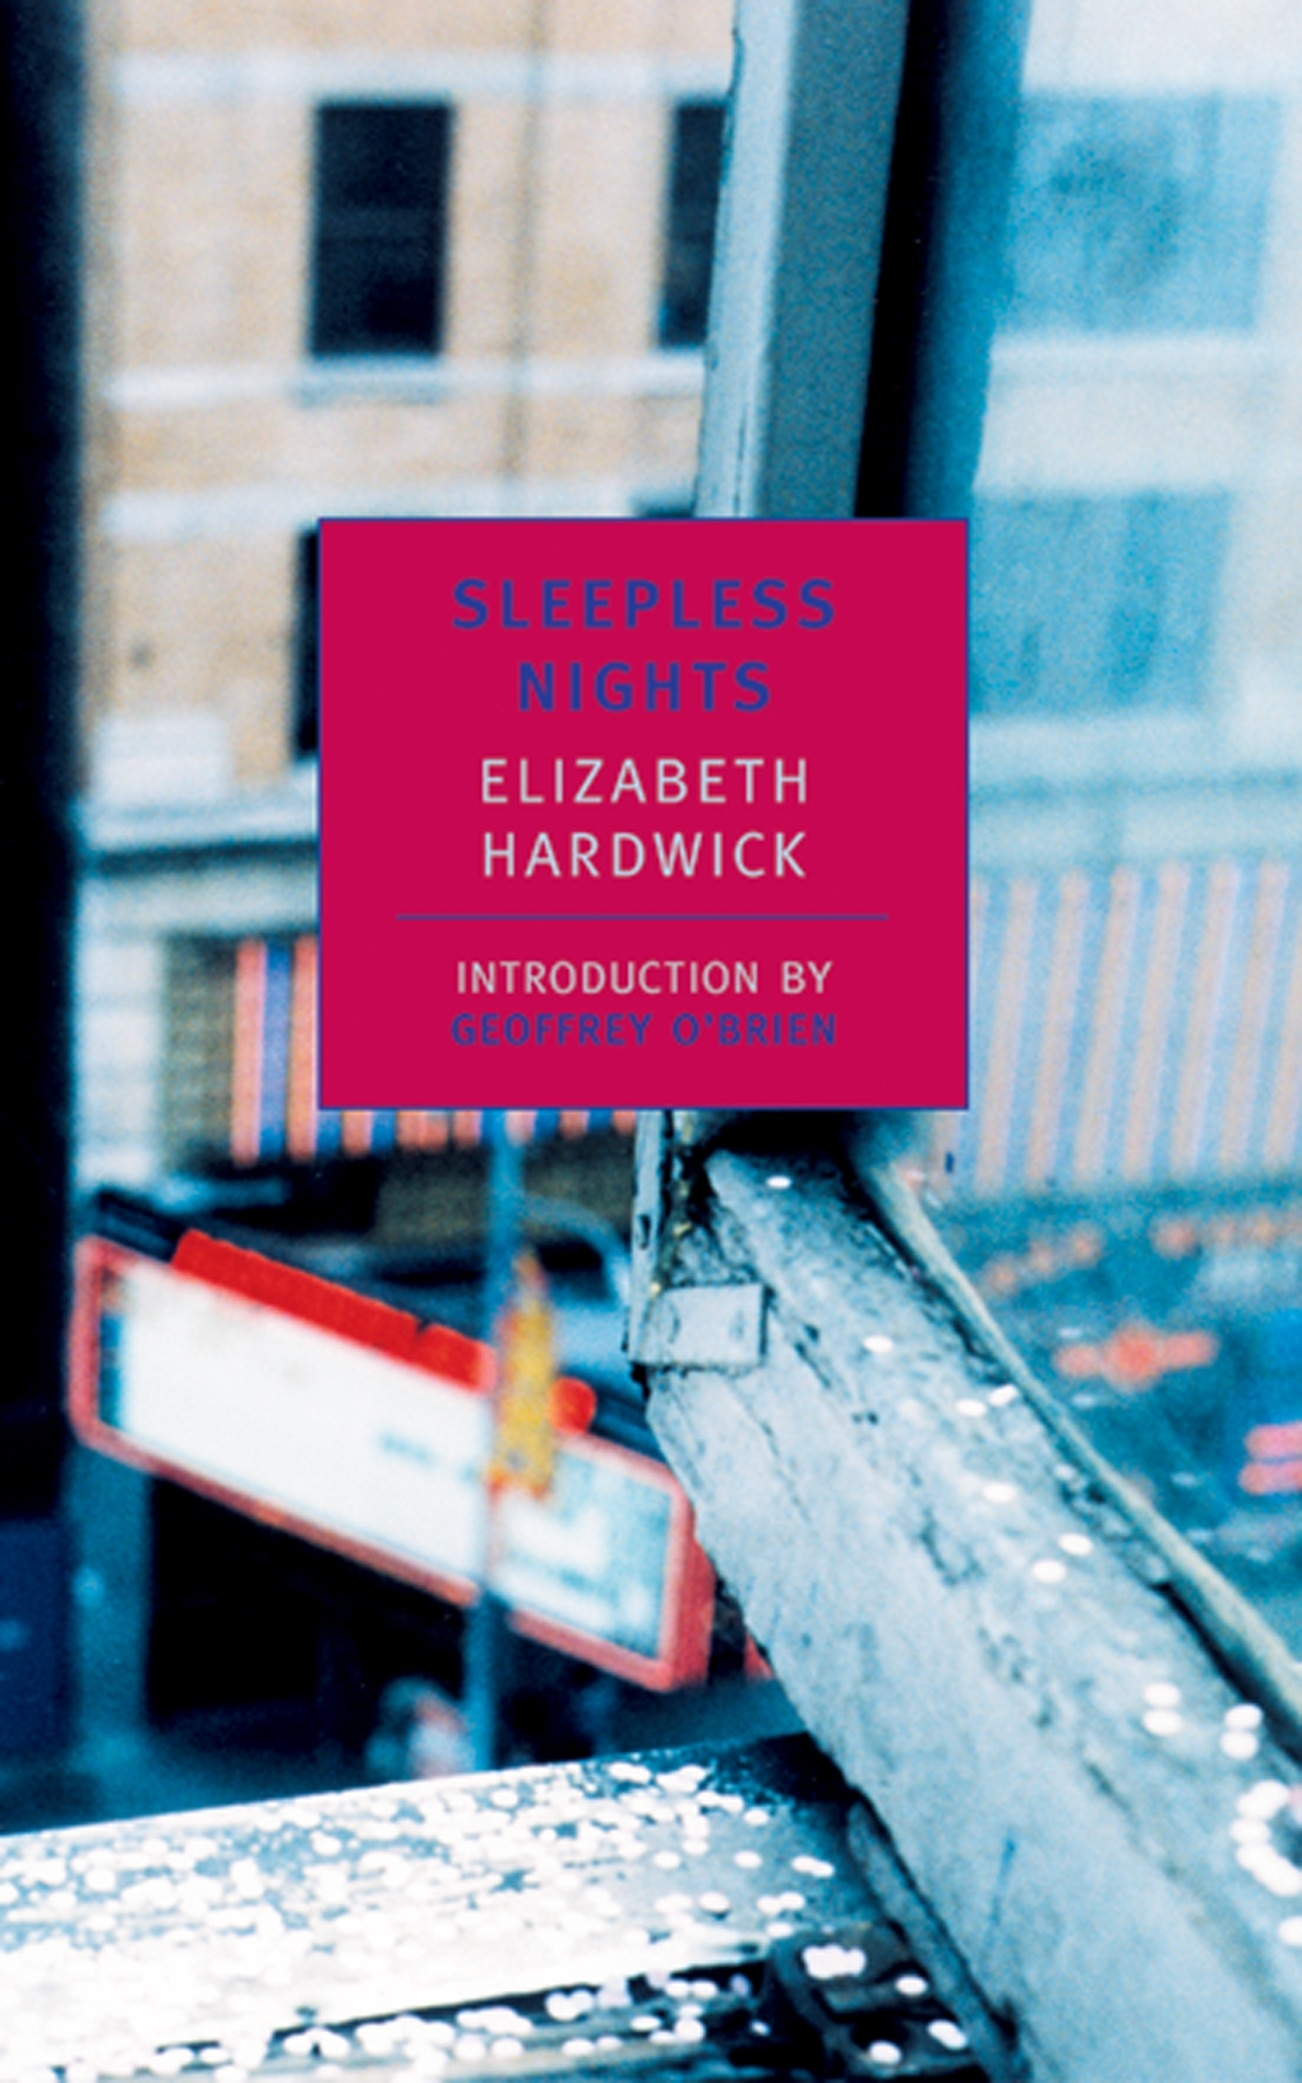 Sleepless Nights by Elizabeth Hardwick, ISBN: 9780940322721